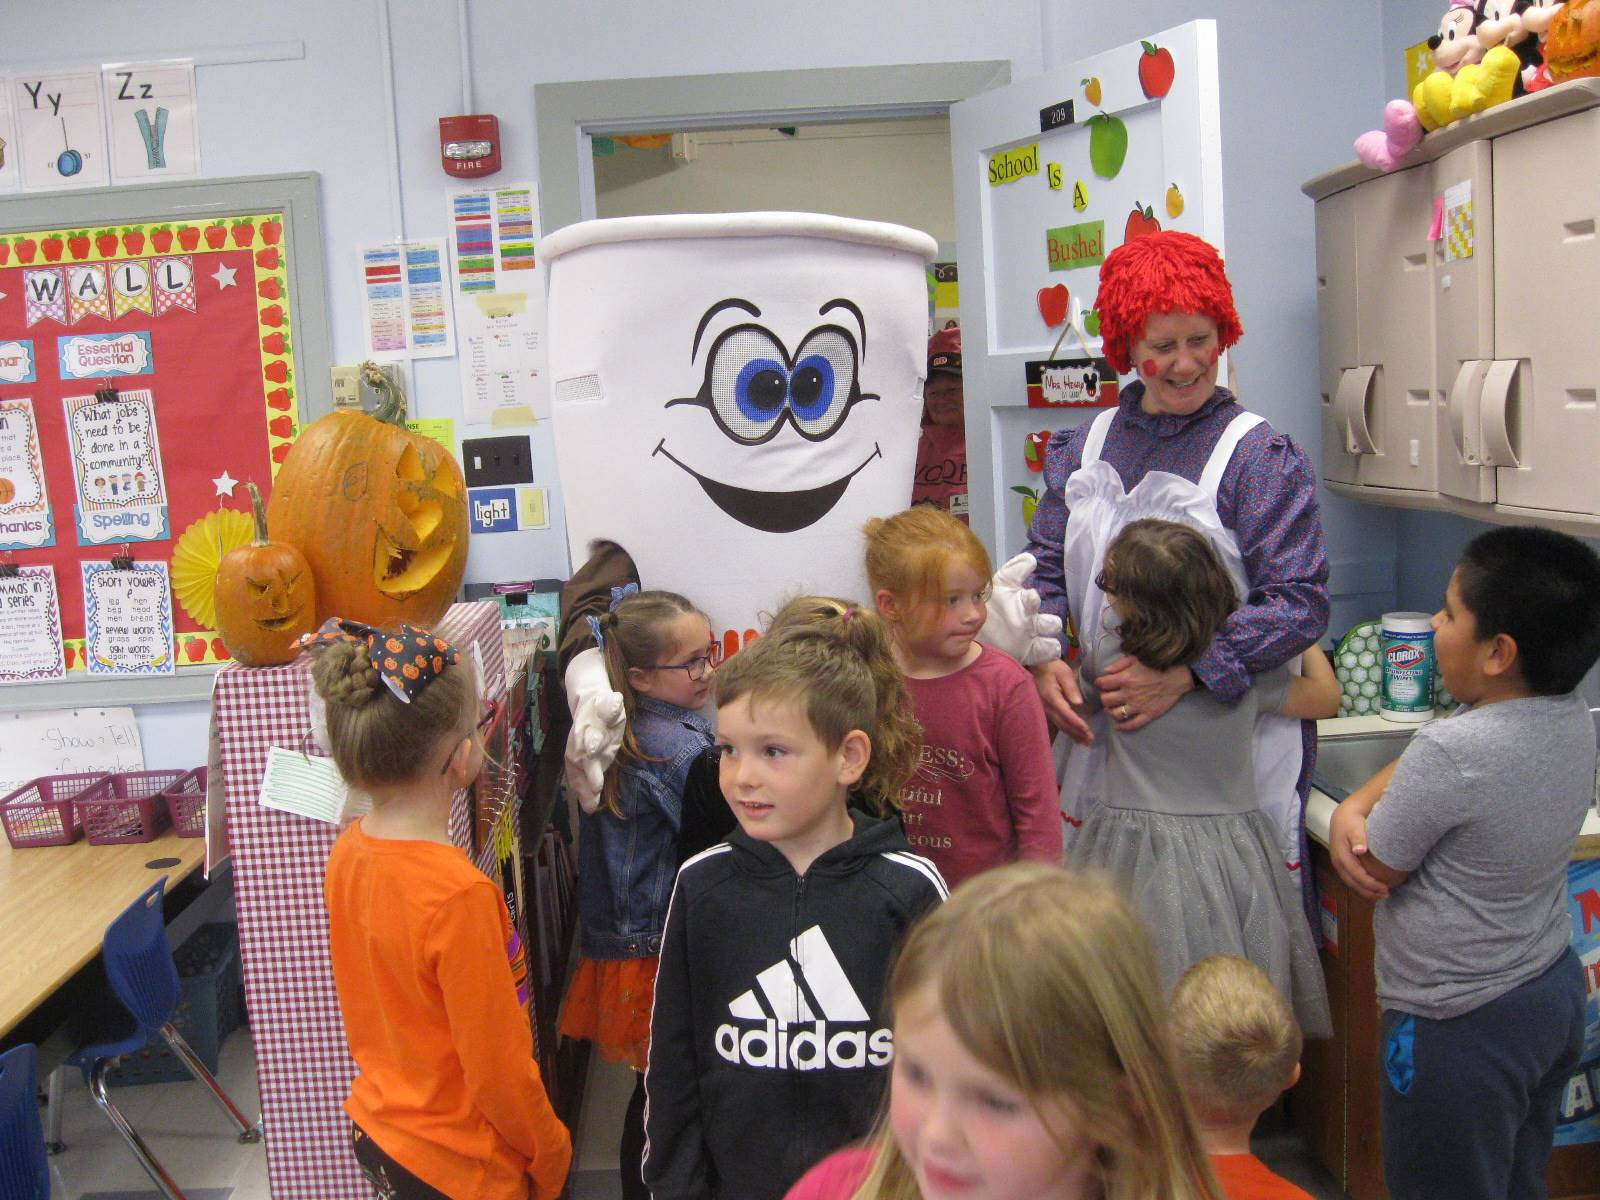 Dunkin Donut man and raggedy ann talk while students watch.